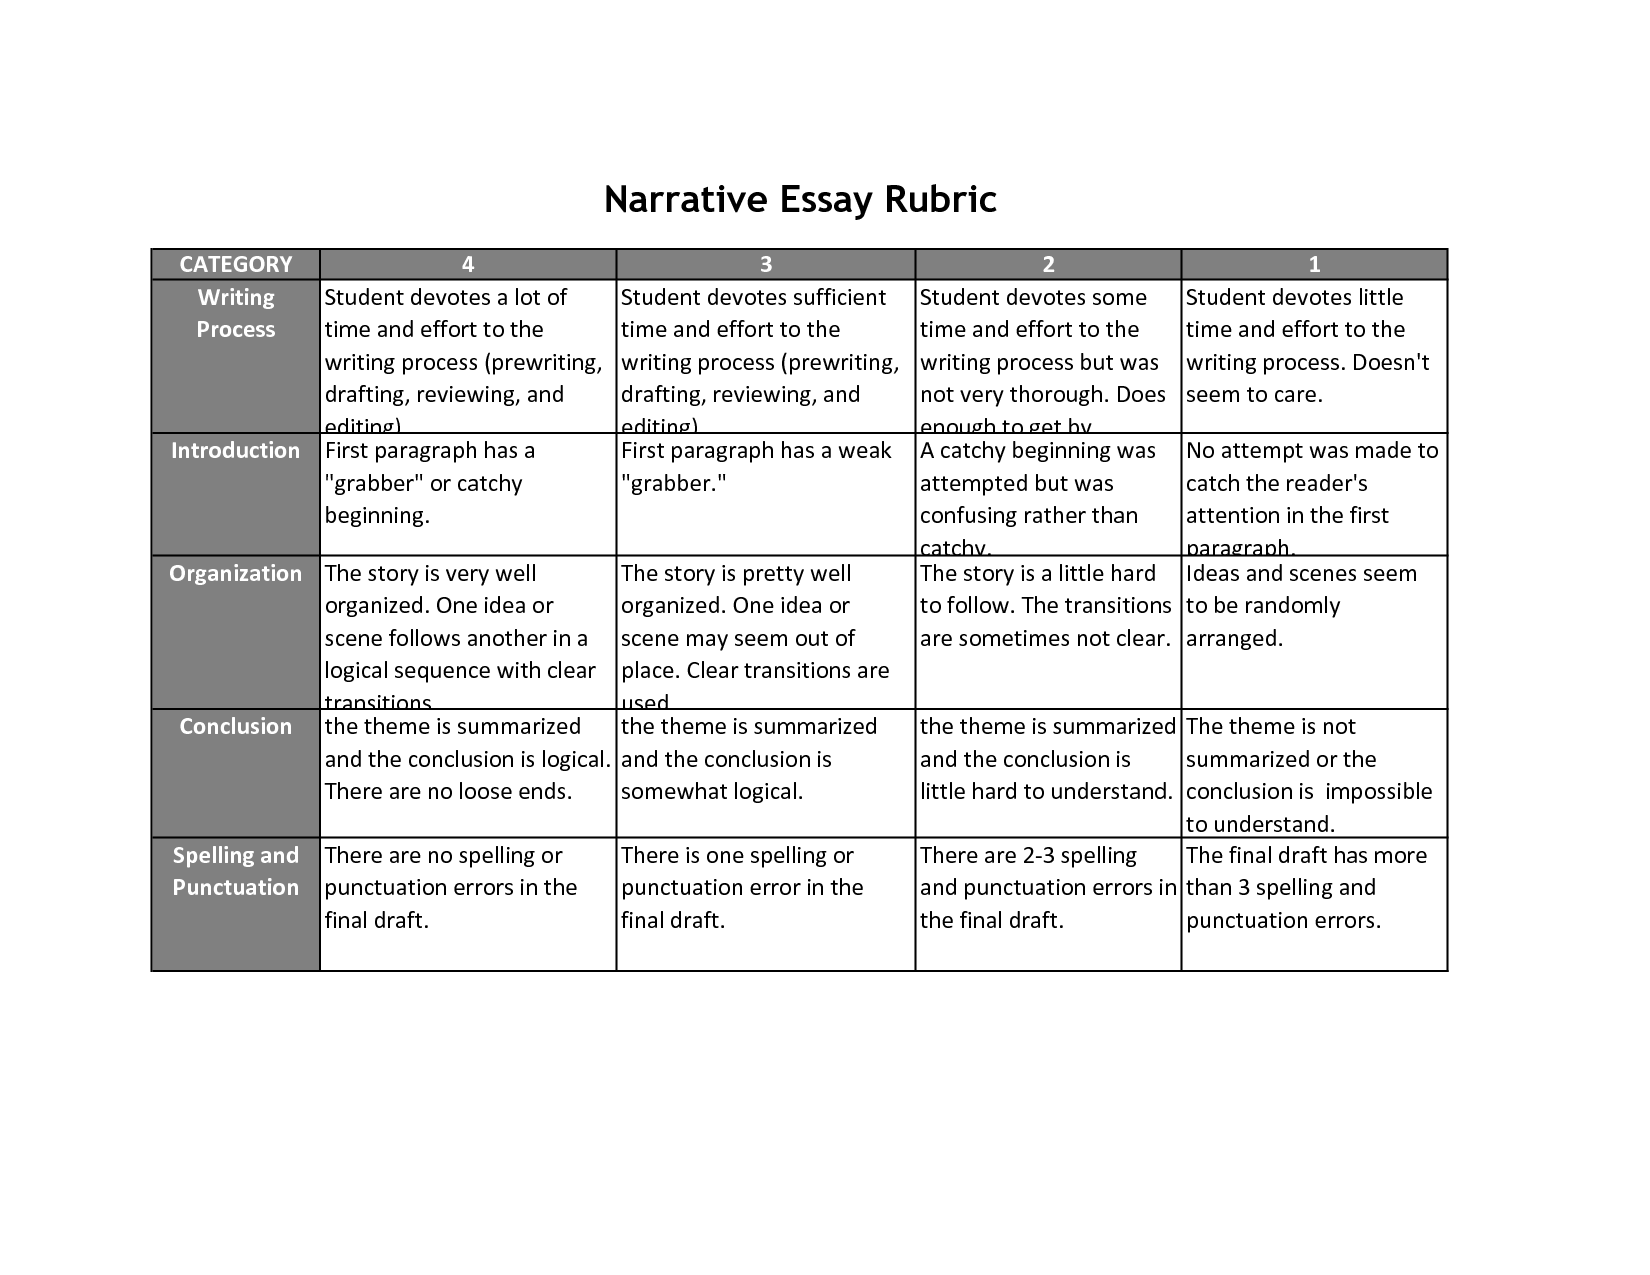 five paragraph essay rubric high school A rubric for grading the five paragraph essay: submitted by diane e sutschek  carwise middle school palm harbor, florida organization: _____5.